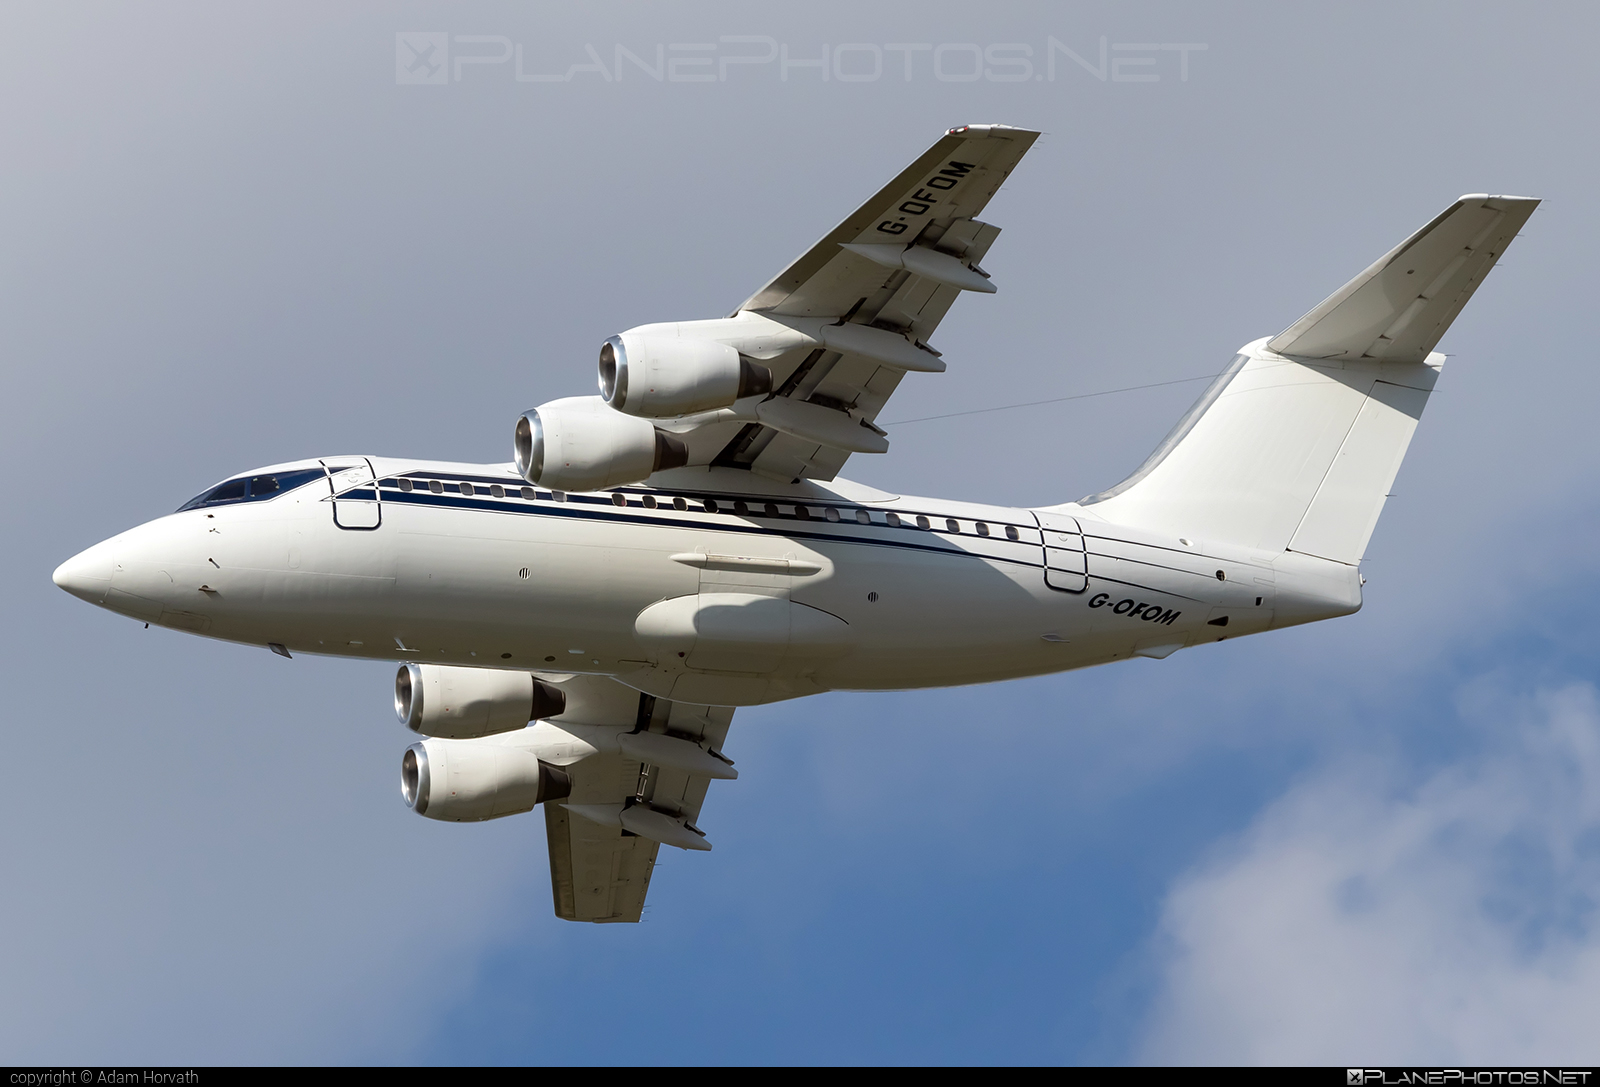 British Aerospace BAe 146-100 - G-OFOM operated by Formula One Management Ltd #bae146 #bae146100 #britishaerospace #formulaonemanagement